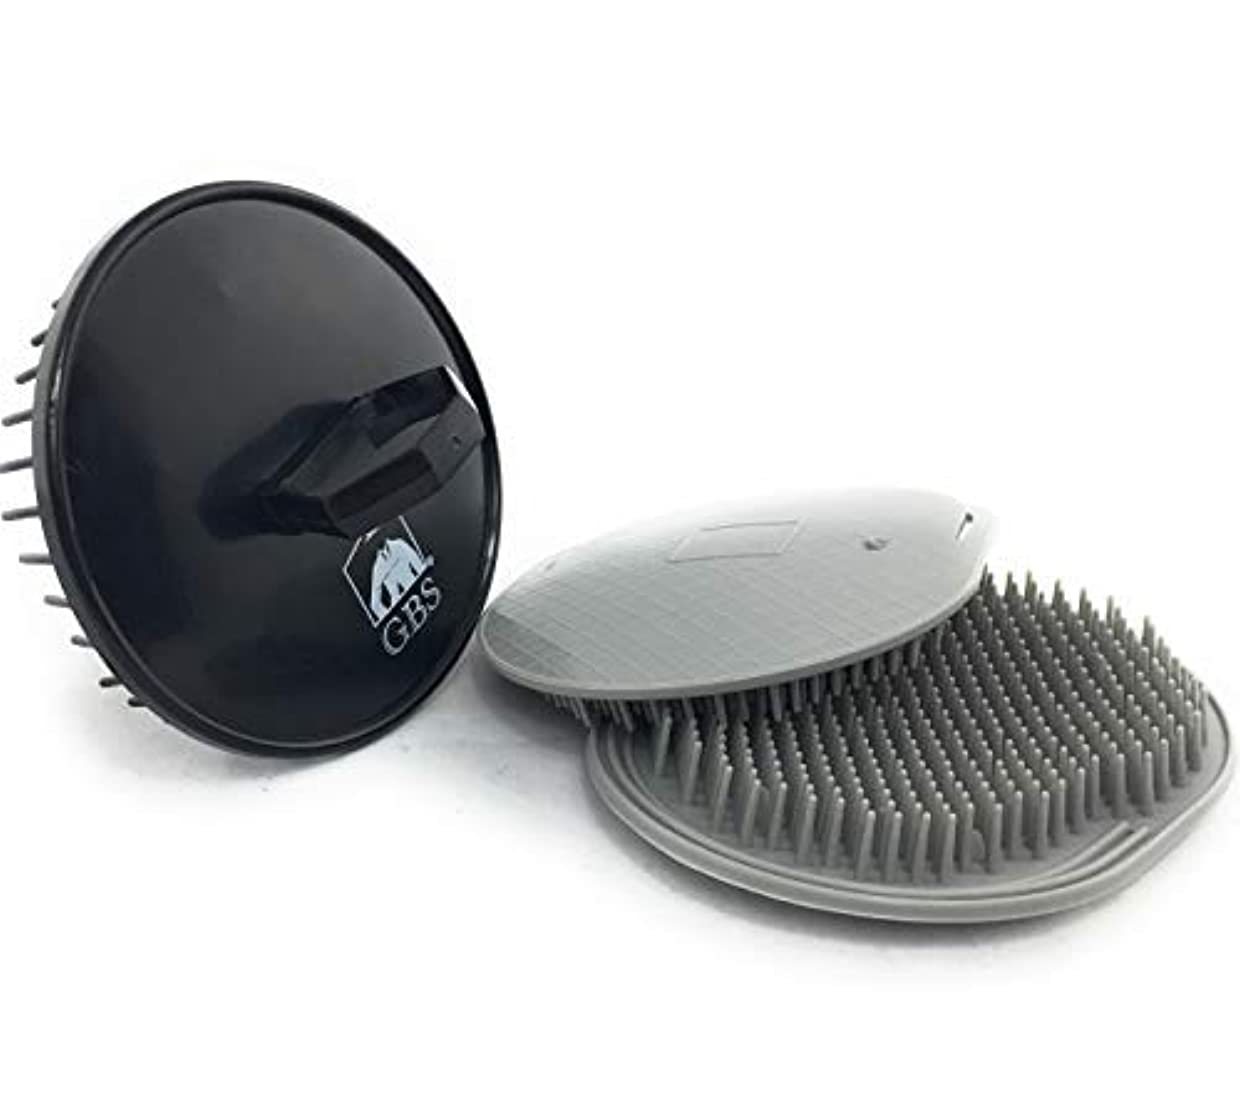 強います不潔パテGBS Soft Pocket Palm Brush. Massage and Head Scratcher. Made In USA 2-Pack - Gray Plus 1 Black Shampoo Brush -...